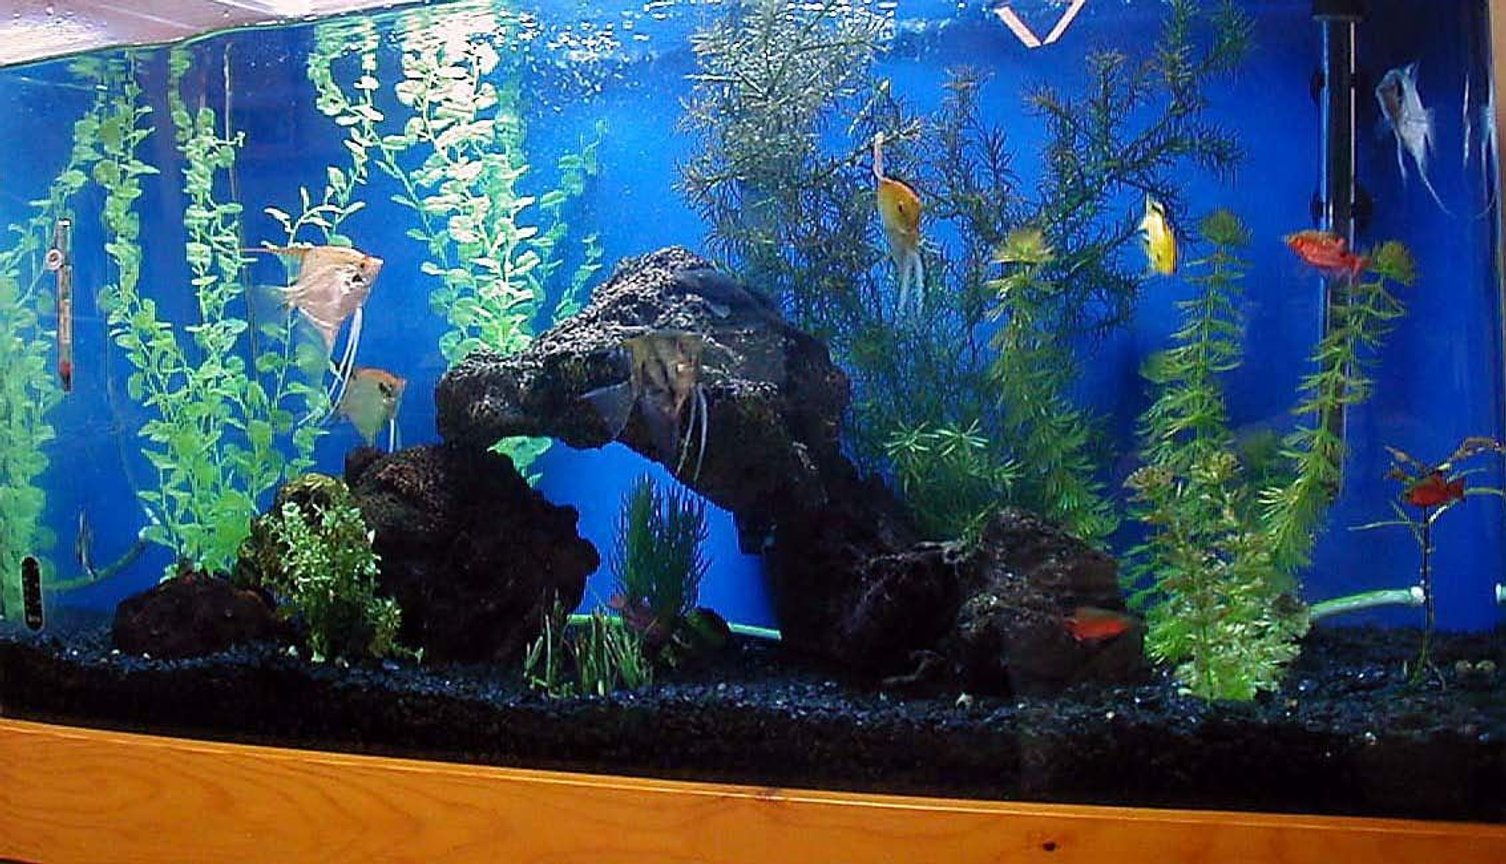 55 gallons freshwater fish tank (mostly fish and non-living decorations) - 55g angel tank with lava rock, driftwood, black gravel and artificial plants. Angels, electric yellow cichlid, rosey barbs, flying foxes and bushynose pleco.